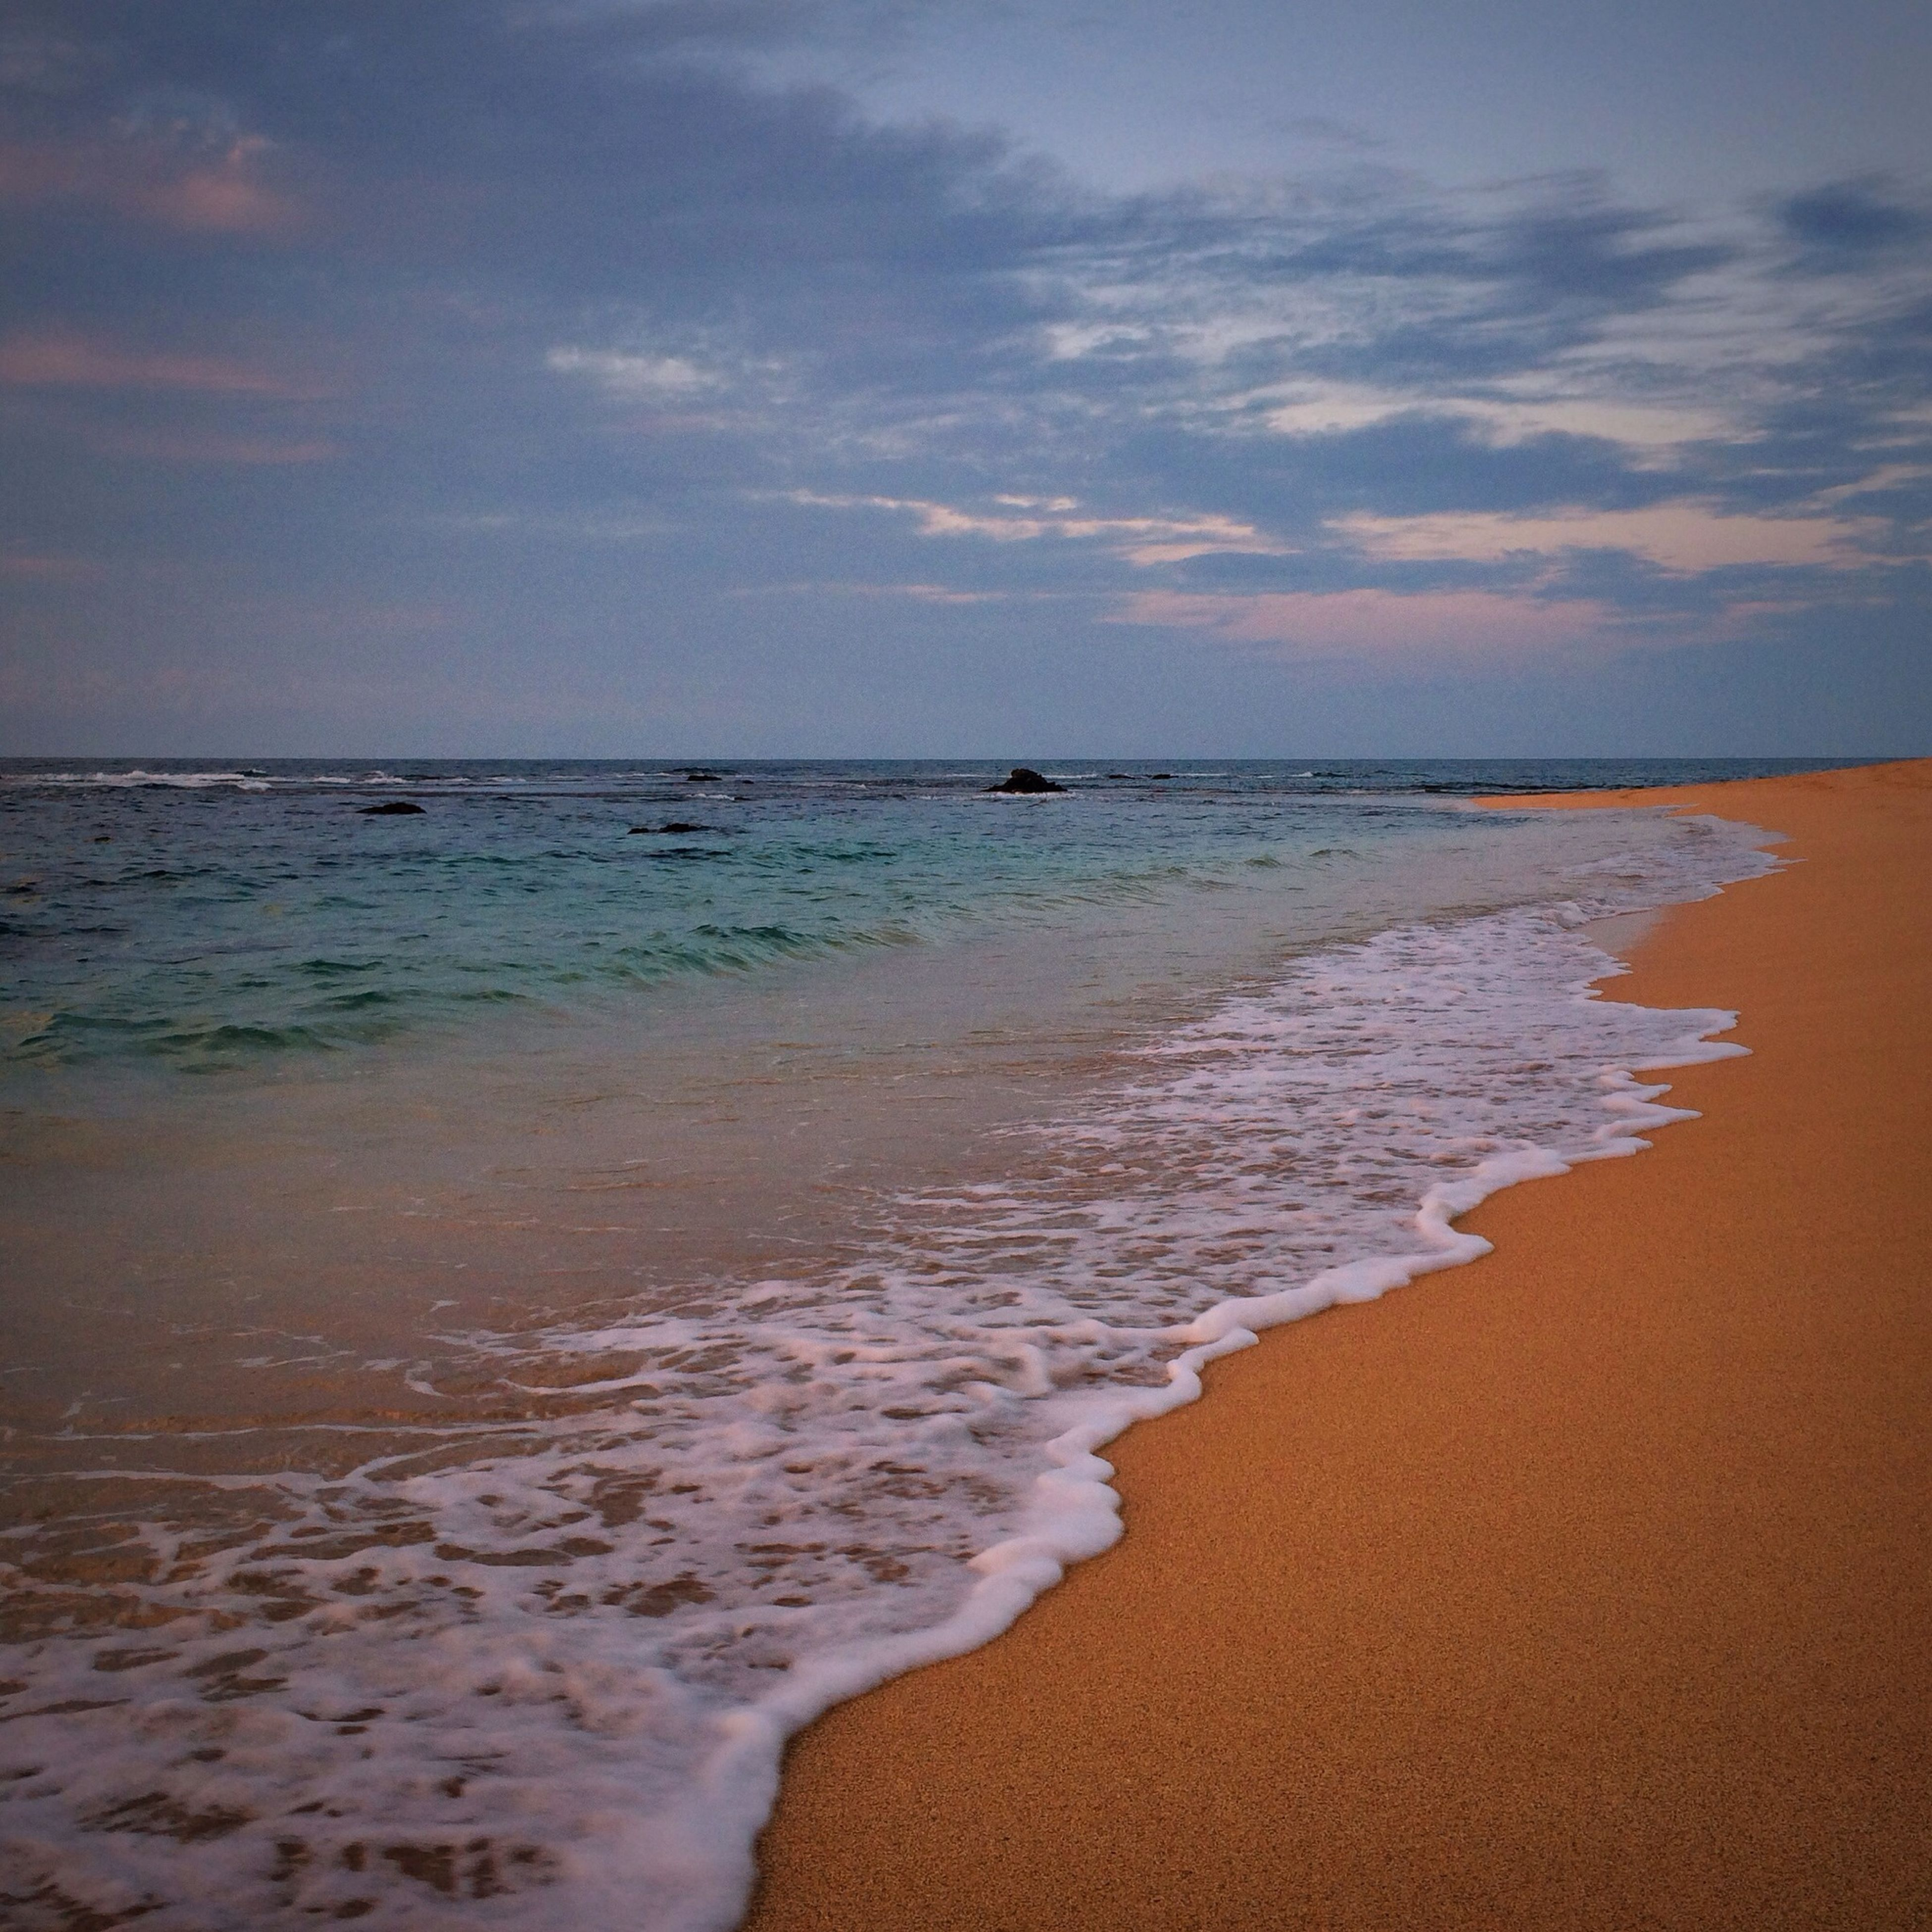 beach, sea, water, shore, horizon over water, sand, sky, tranquil scene, scenics, tranquility, beauty in nature, wave, nature, cloud - sky, idyllic, coastline, sunset, surf, calm, cloud